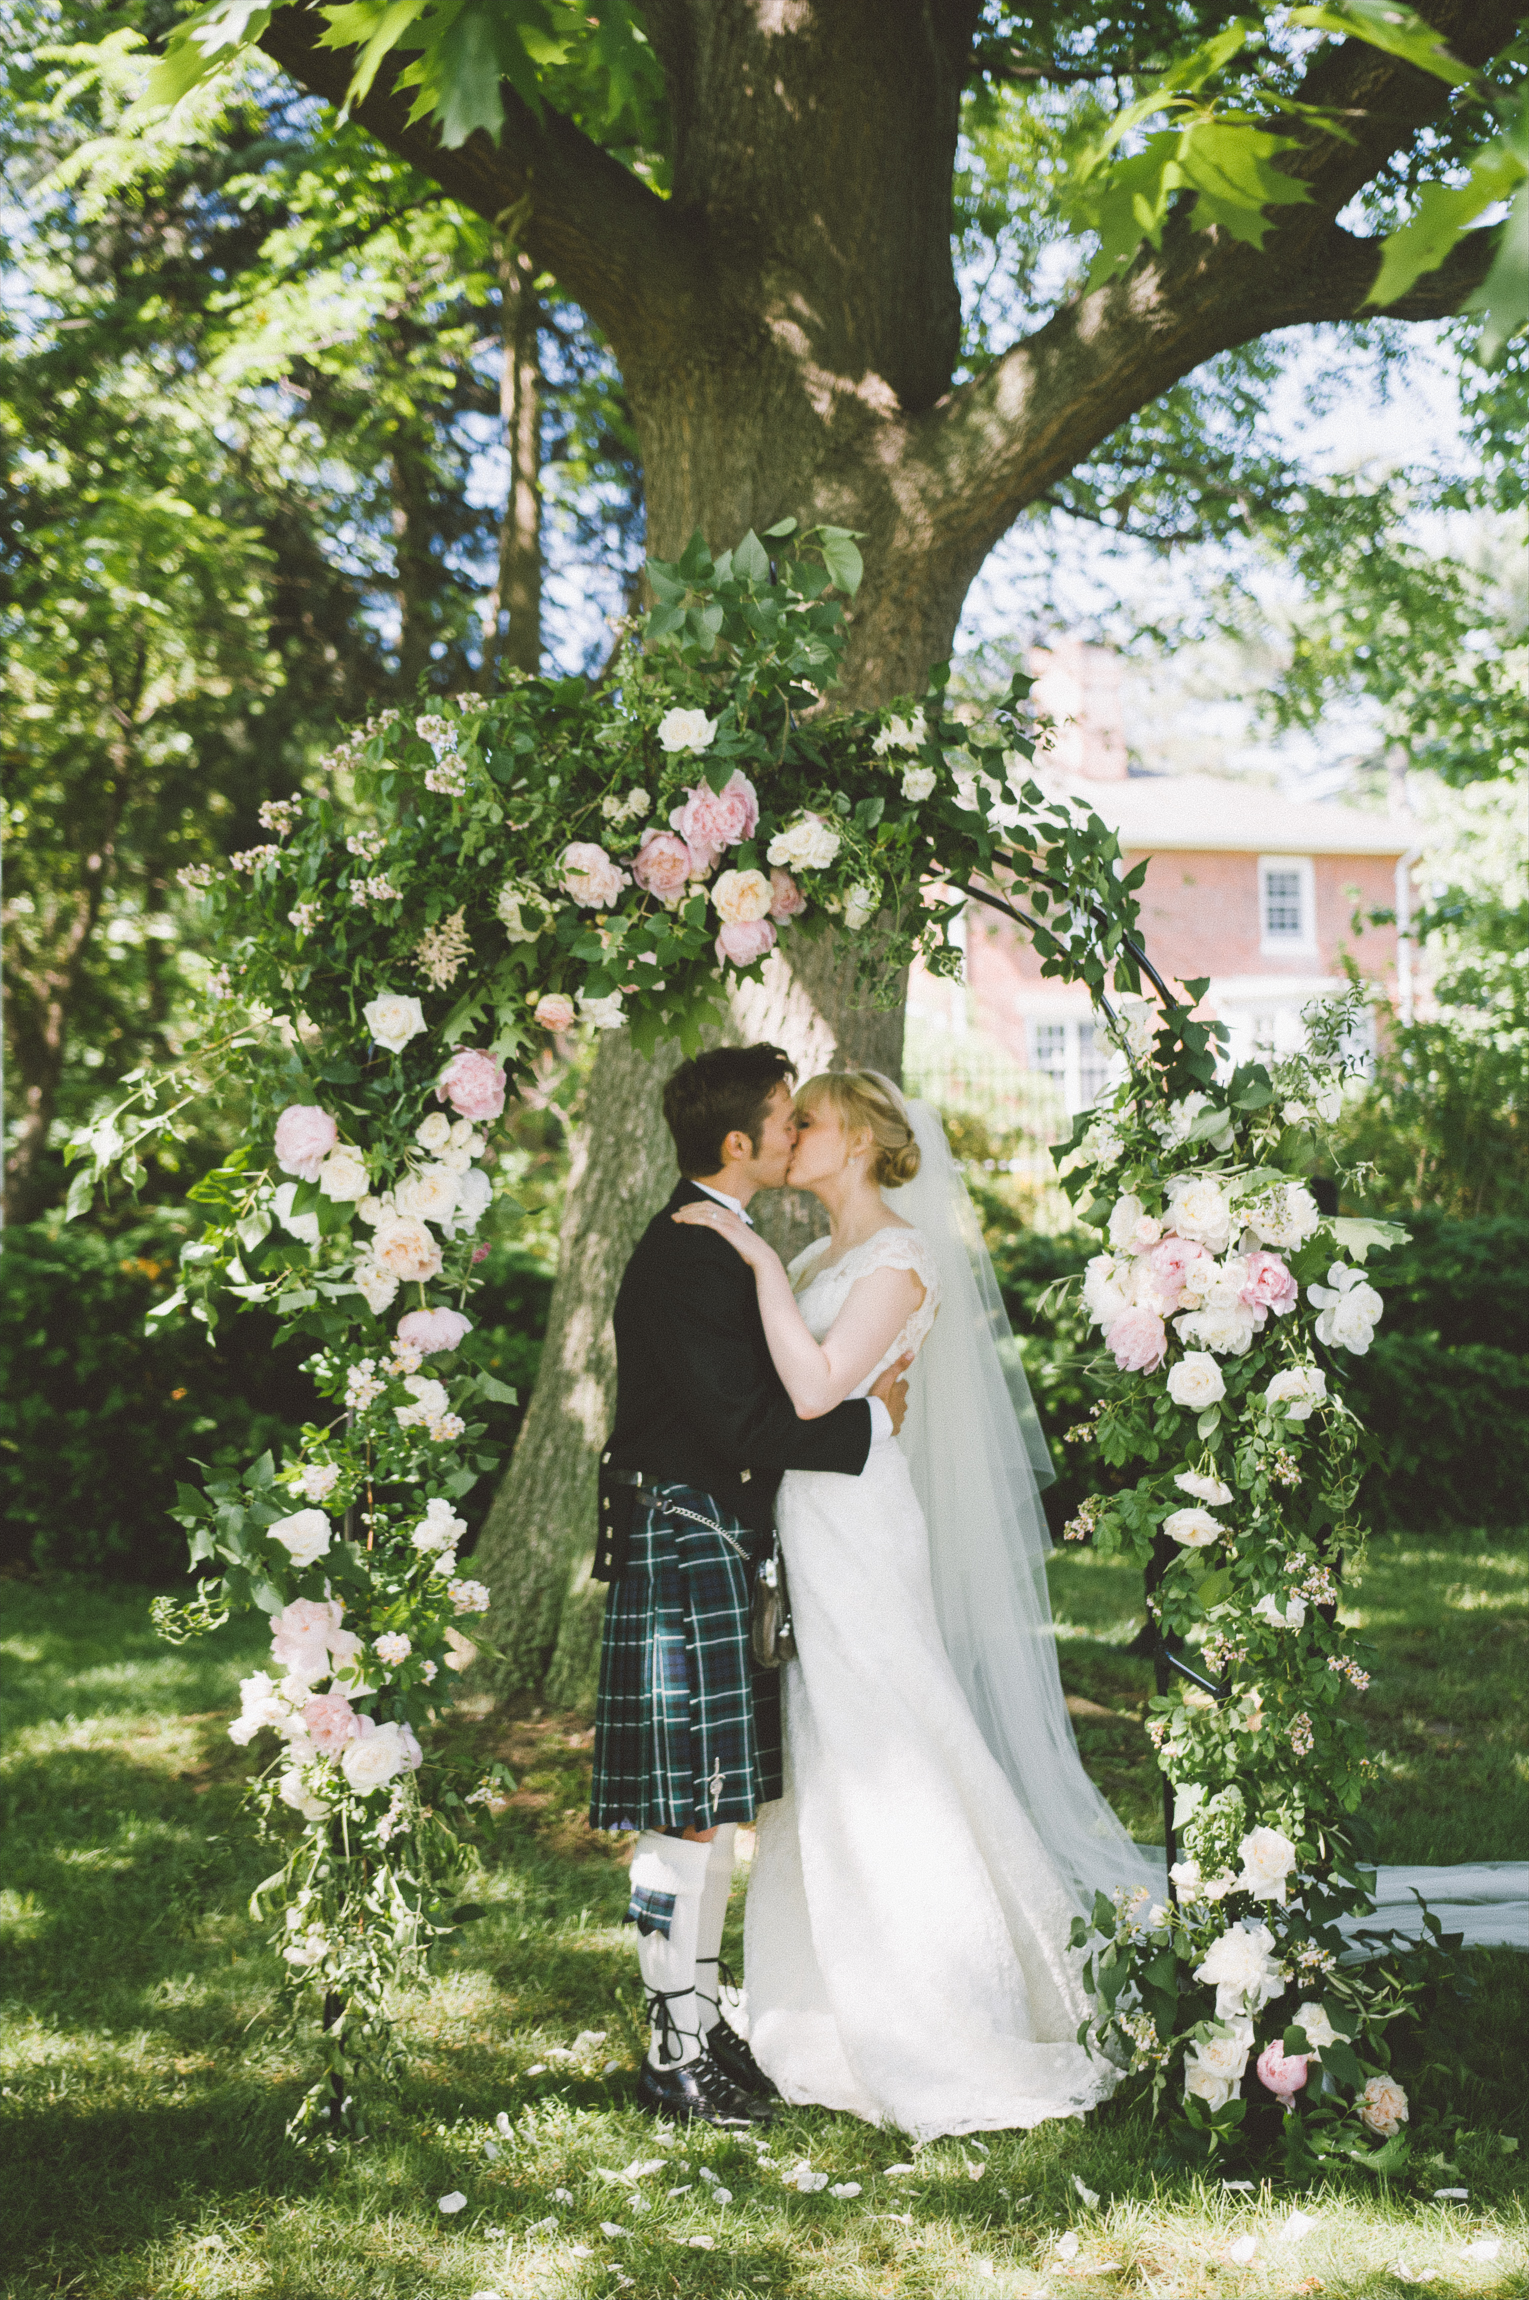 amanda cowley events niagara wedding planner kurtz orchard gracewood estate tree ceremony floral arch arbour first kiss